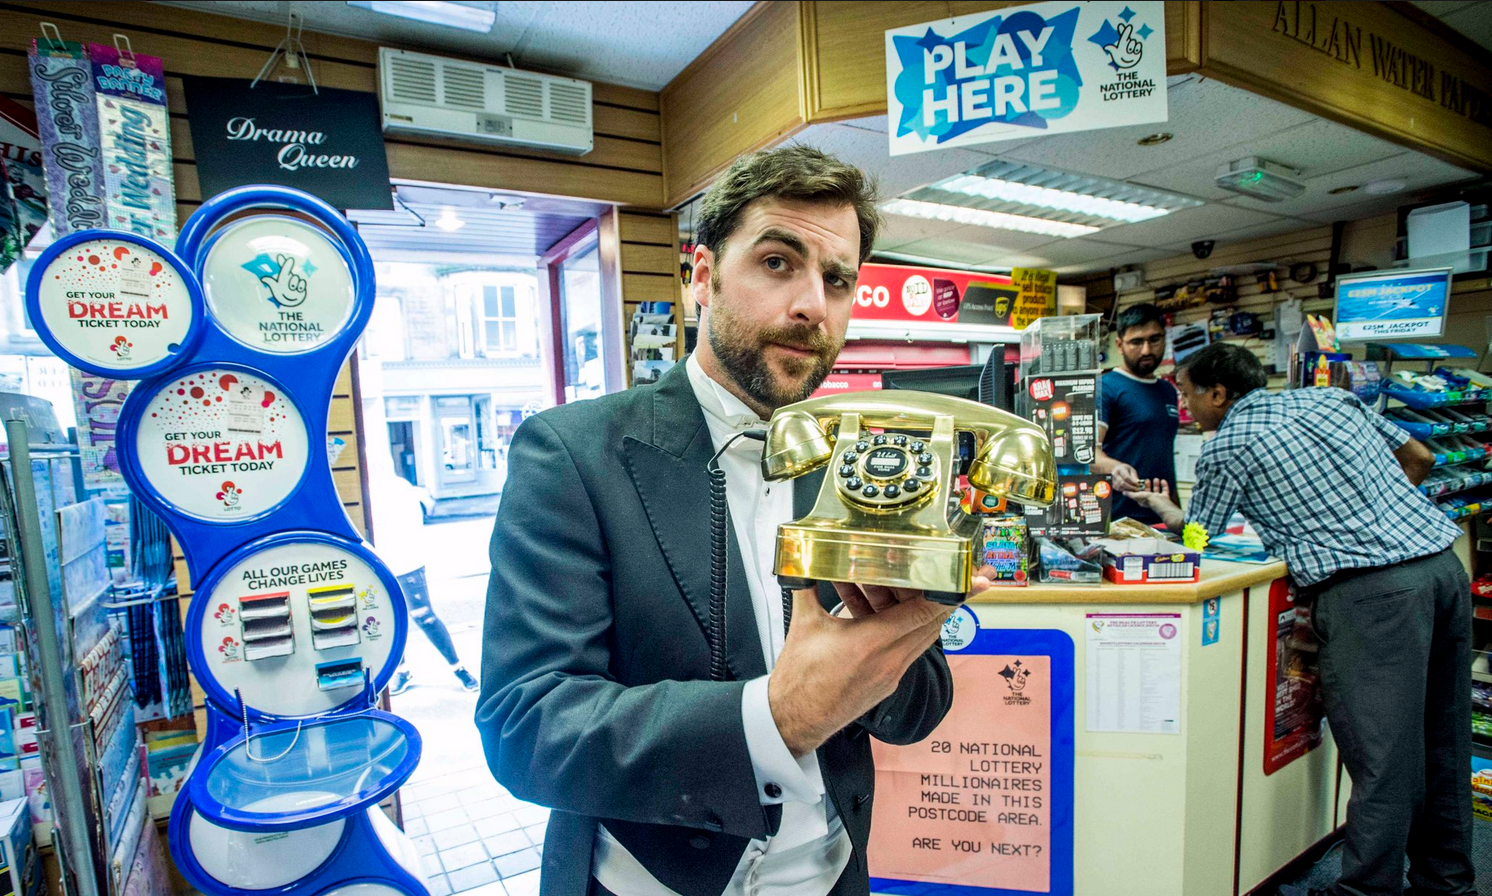 Camelots butlers treated members of the public to every day items to show them how lucky they could really be